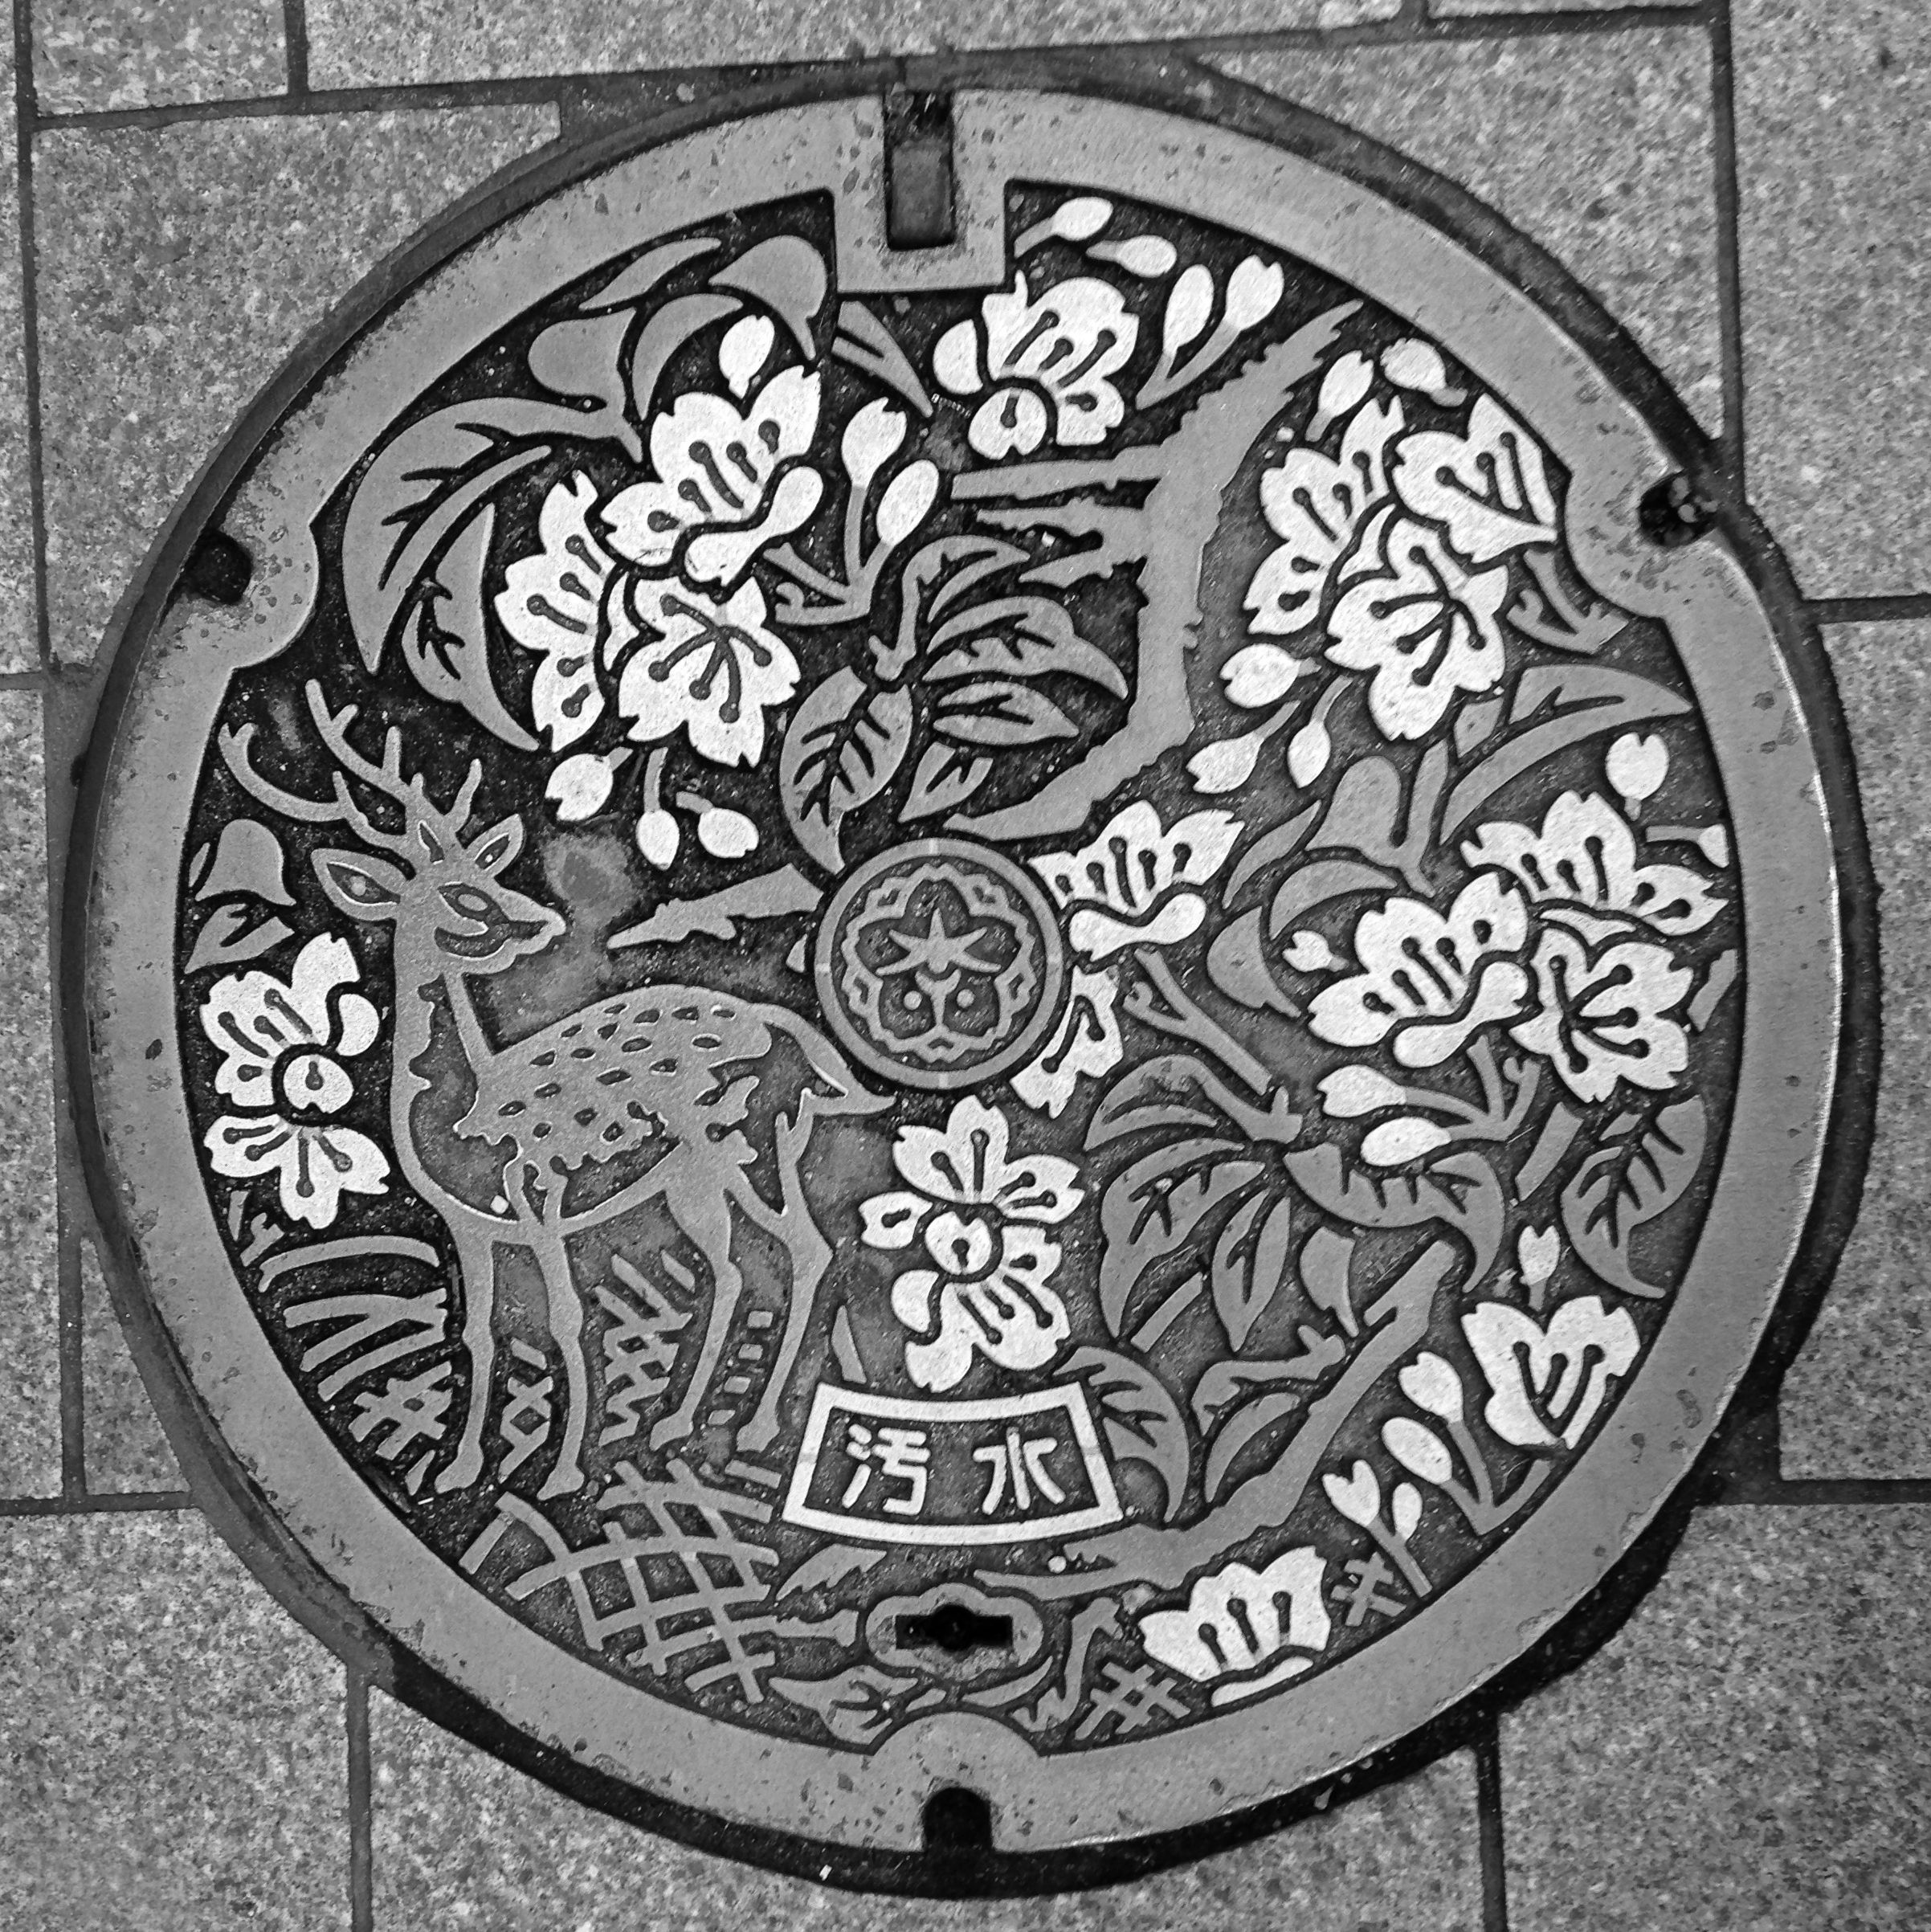 Manhole Cover, Nara, Japan © Harold Davis